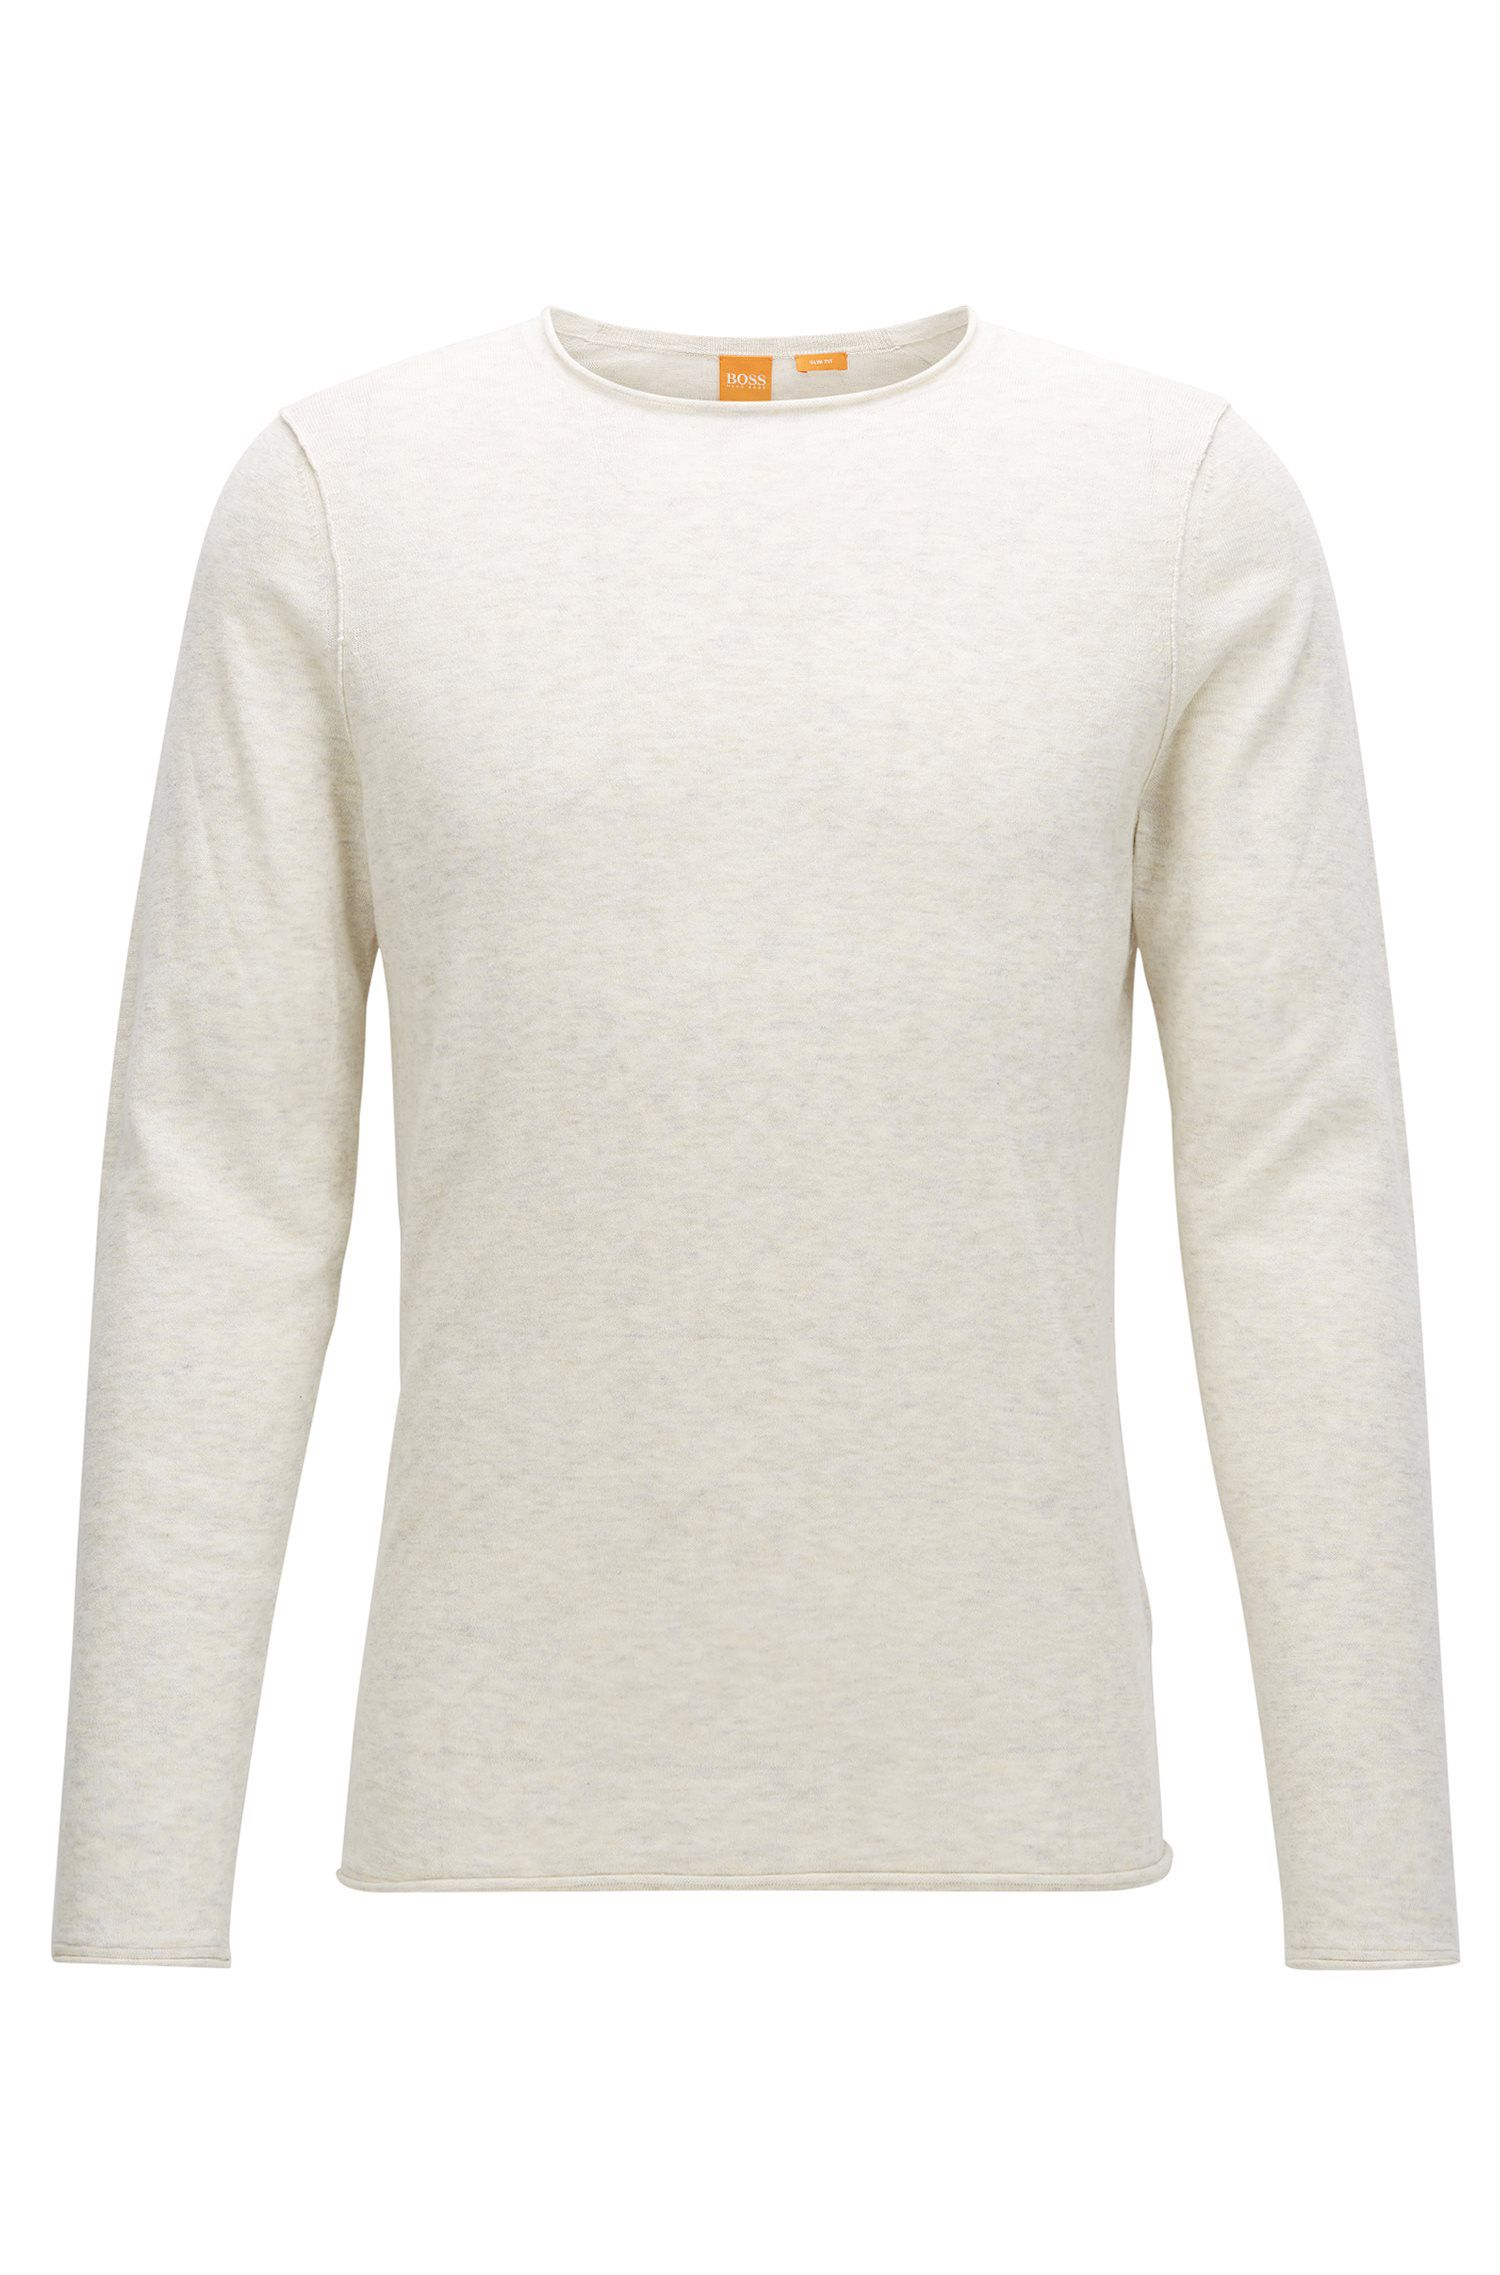 Heathered Cotton Sweater, Slim Fit | Kamiro